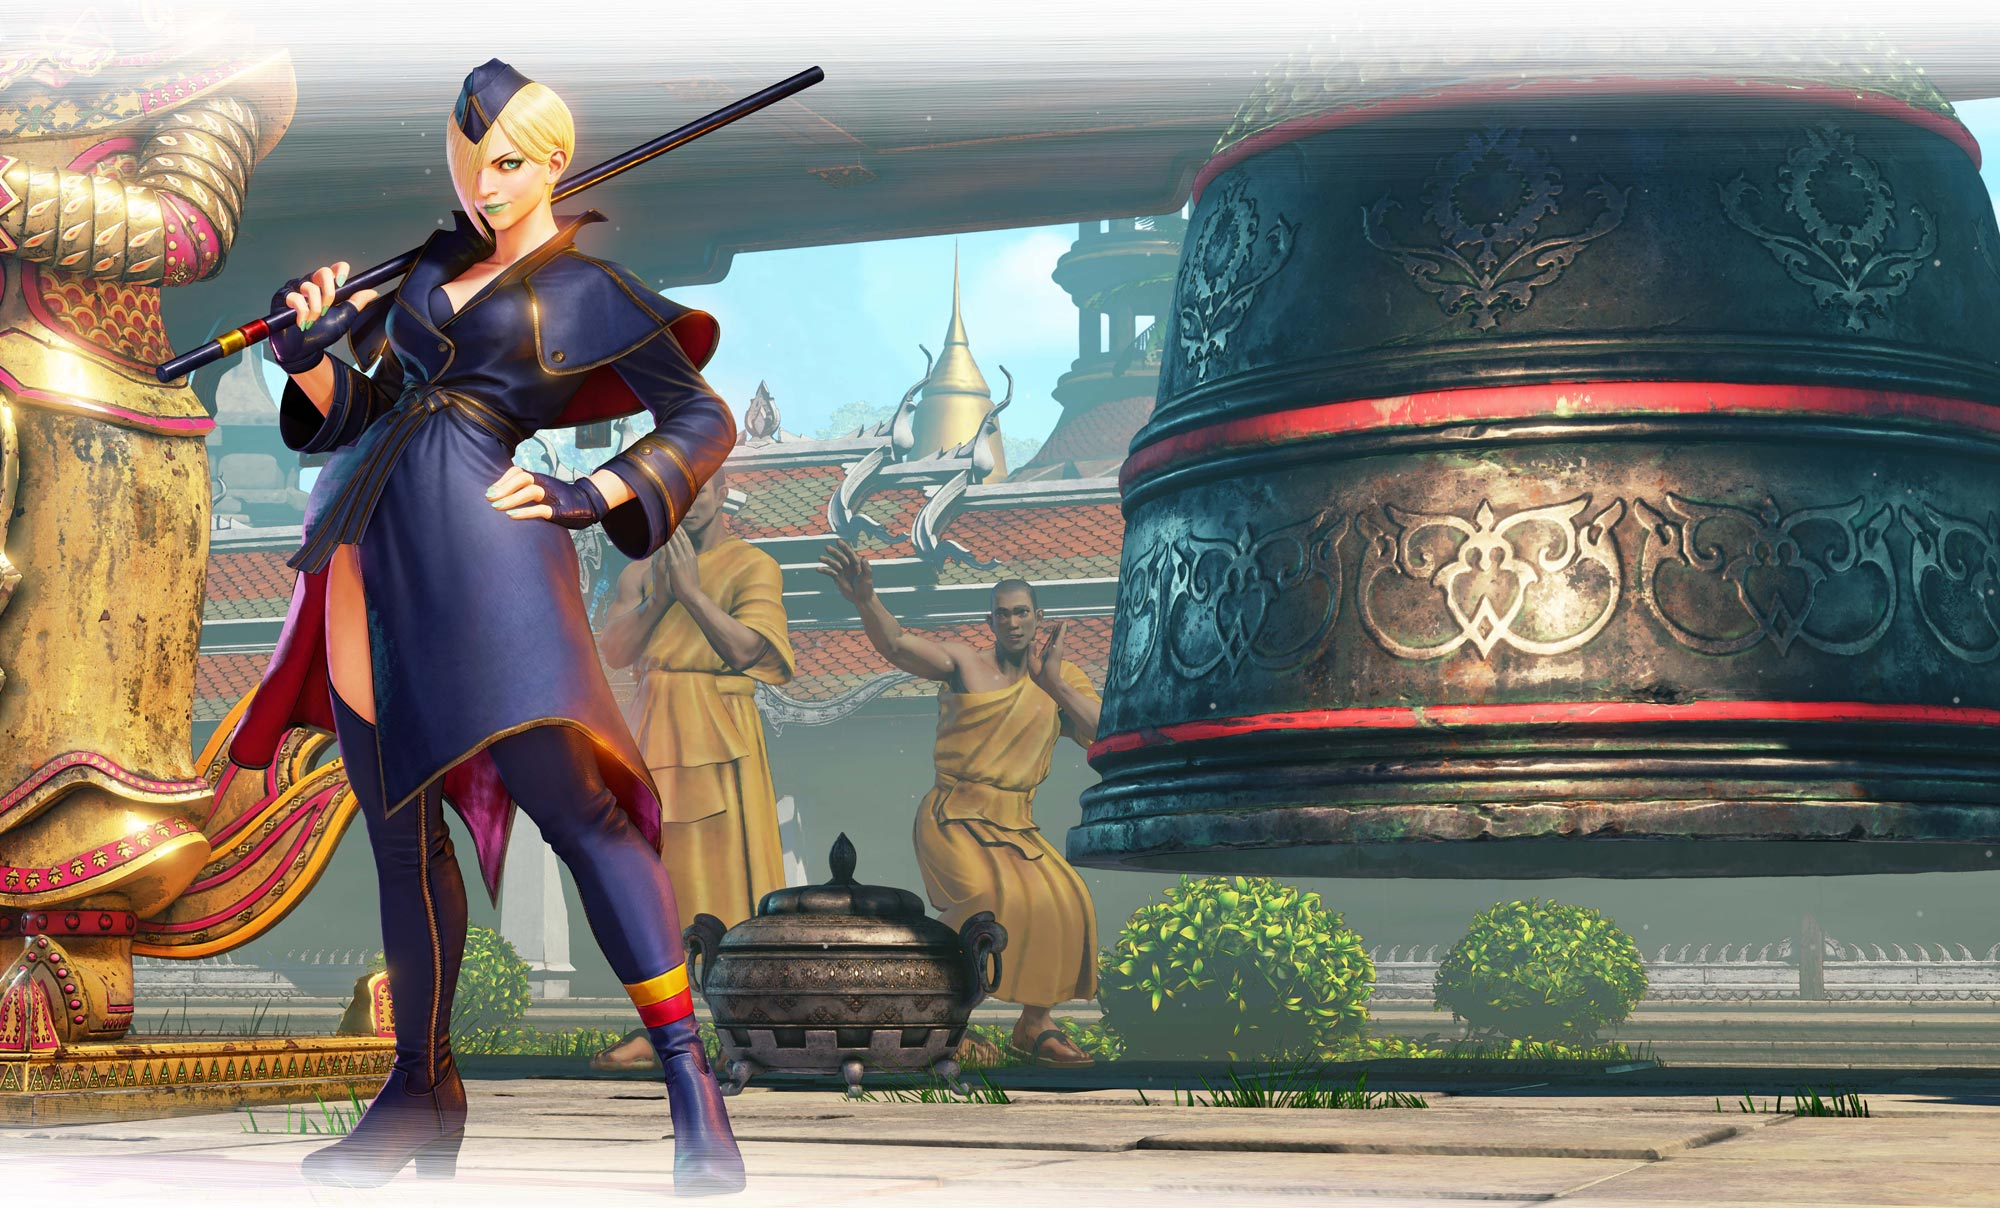 Falke in Street Fighter 5: Arcade Edition 1 out of 15 image gallery